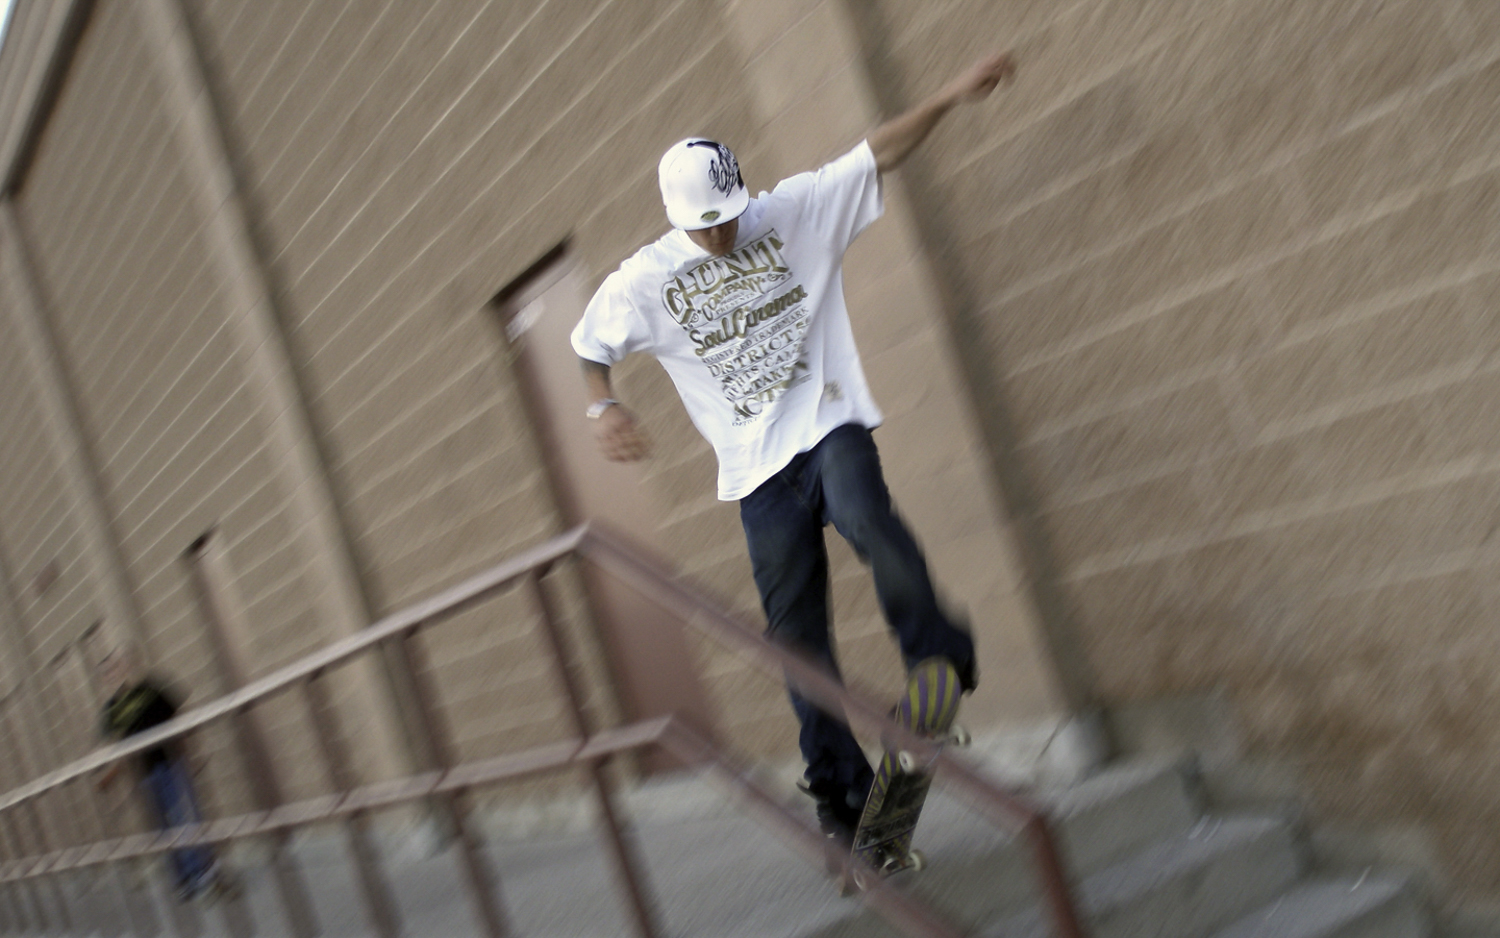 A skateboarder jumping a set of stairs with motion blur